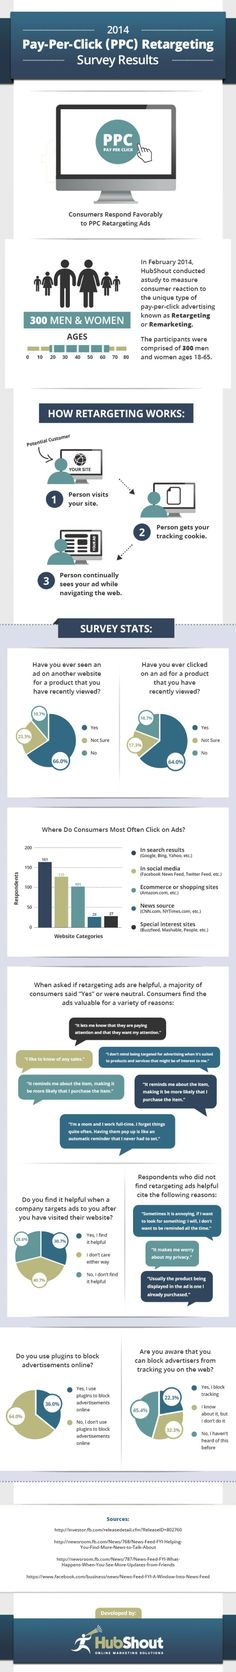 2014 Pay-Per-Click (PPC) Retargeting Survey Results